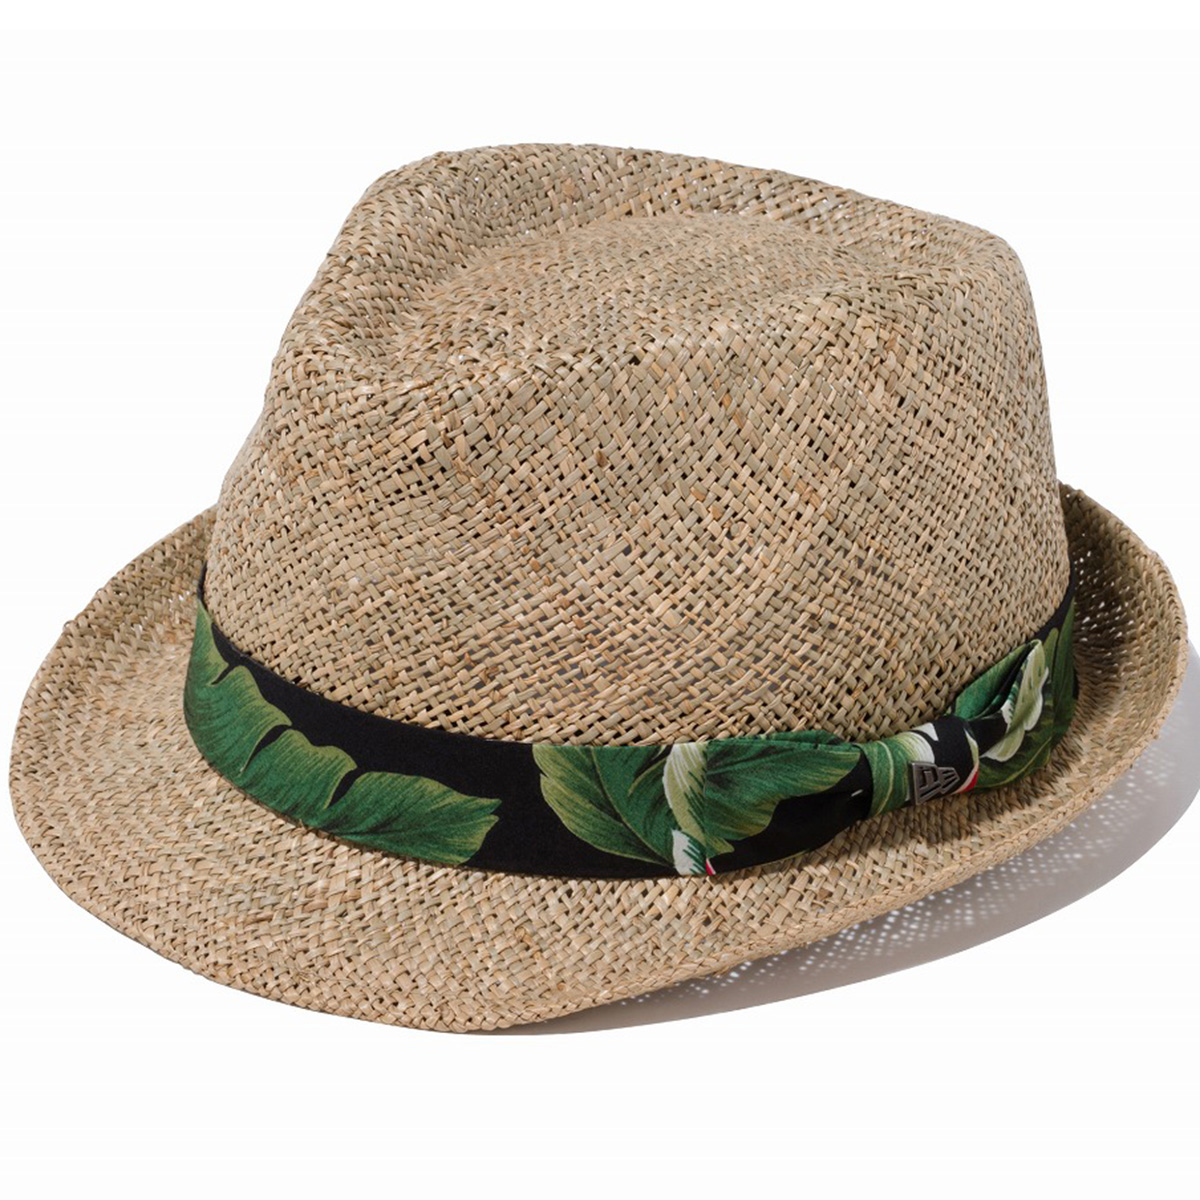 GOLF TRILBY SEAGRASS GROGRAN ハット